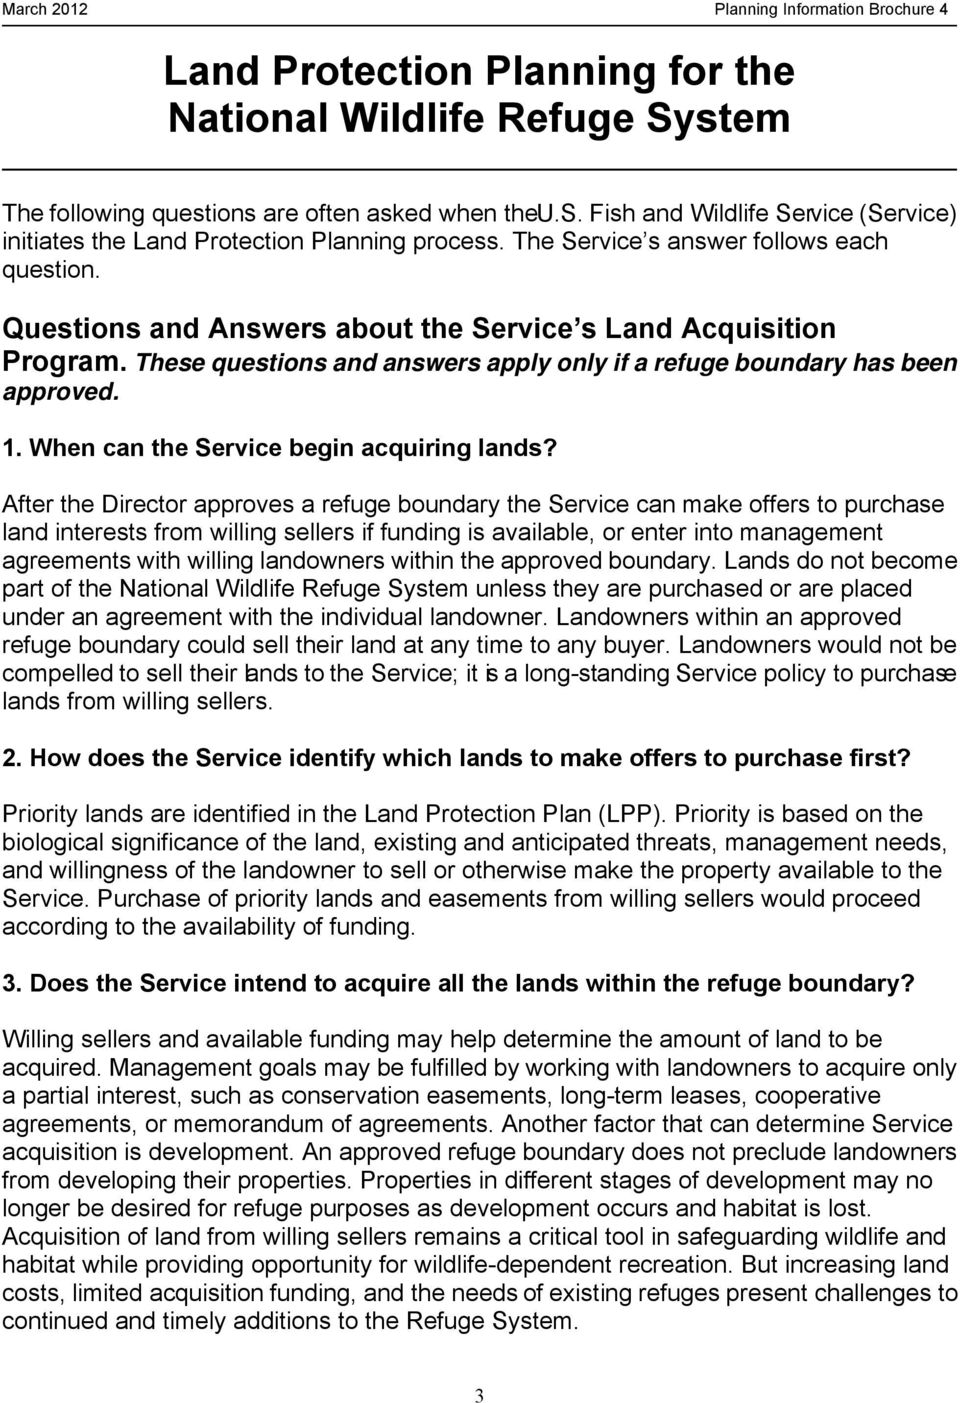 When can the Service begin acquiring lands?